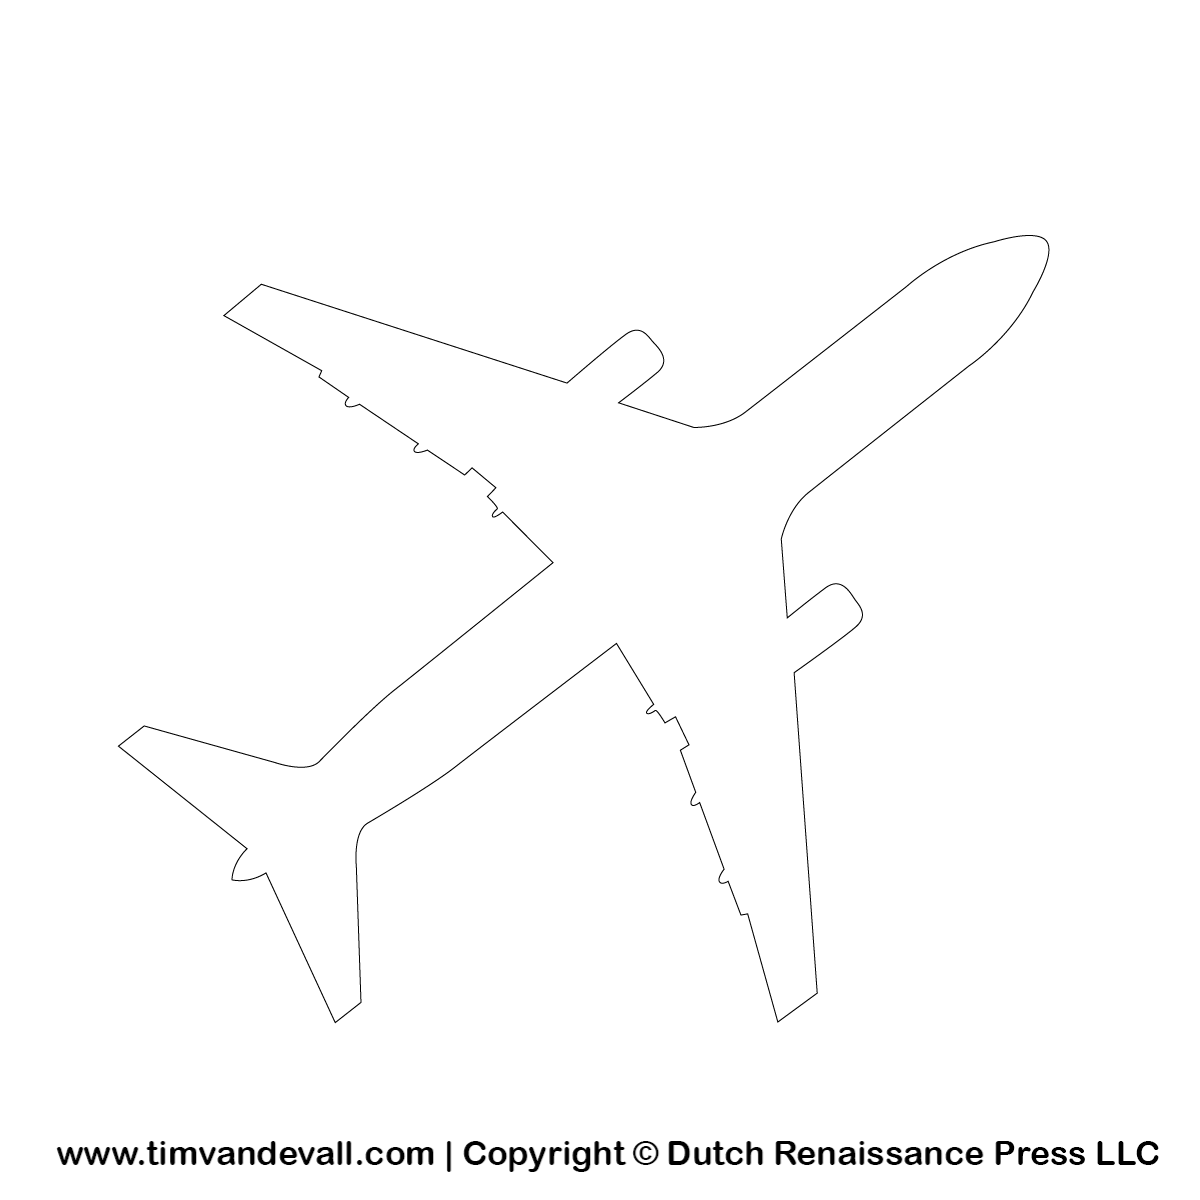 Free airplane silhouette stencil and outline clipart for for Airplane cut out template